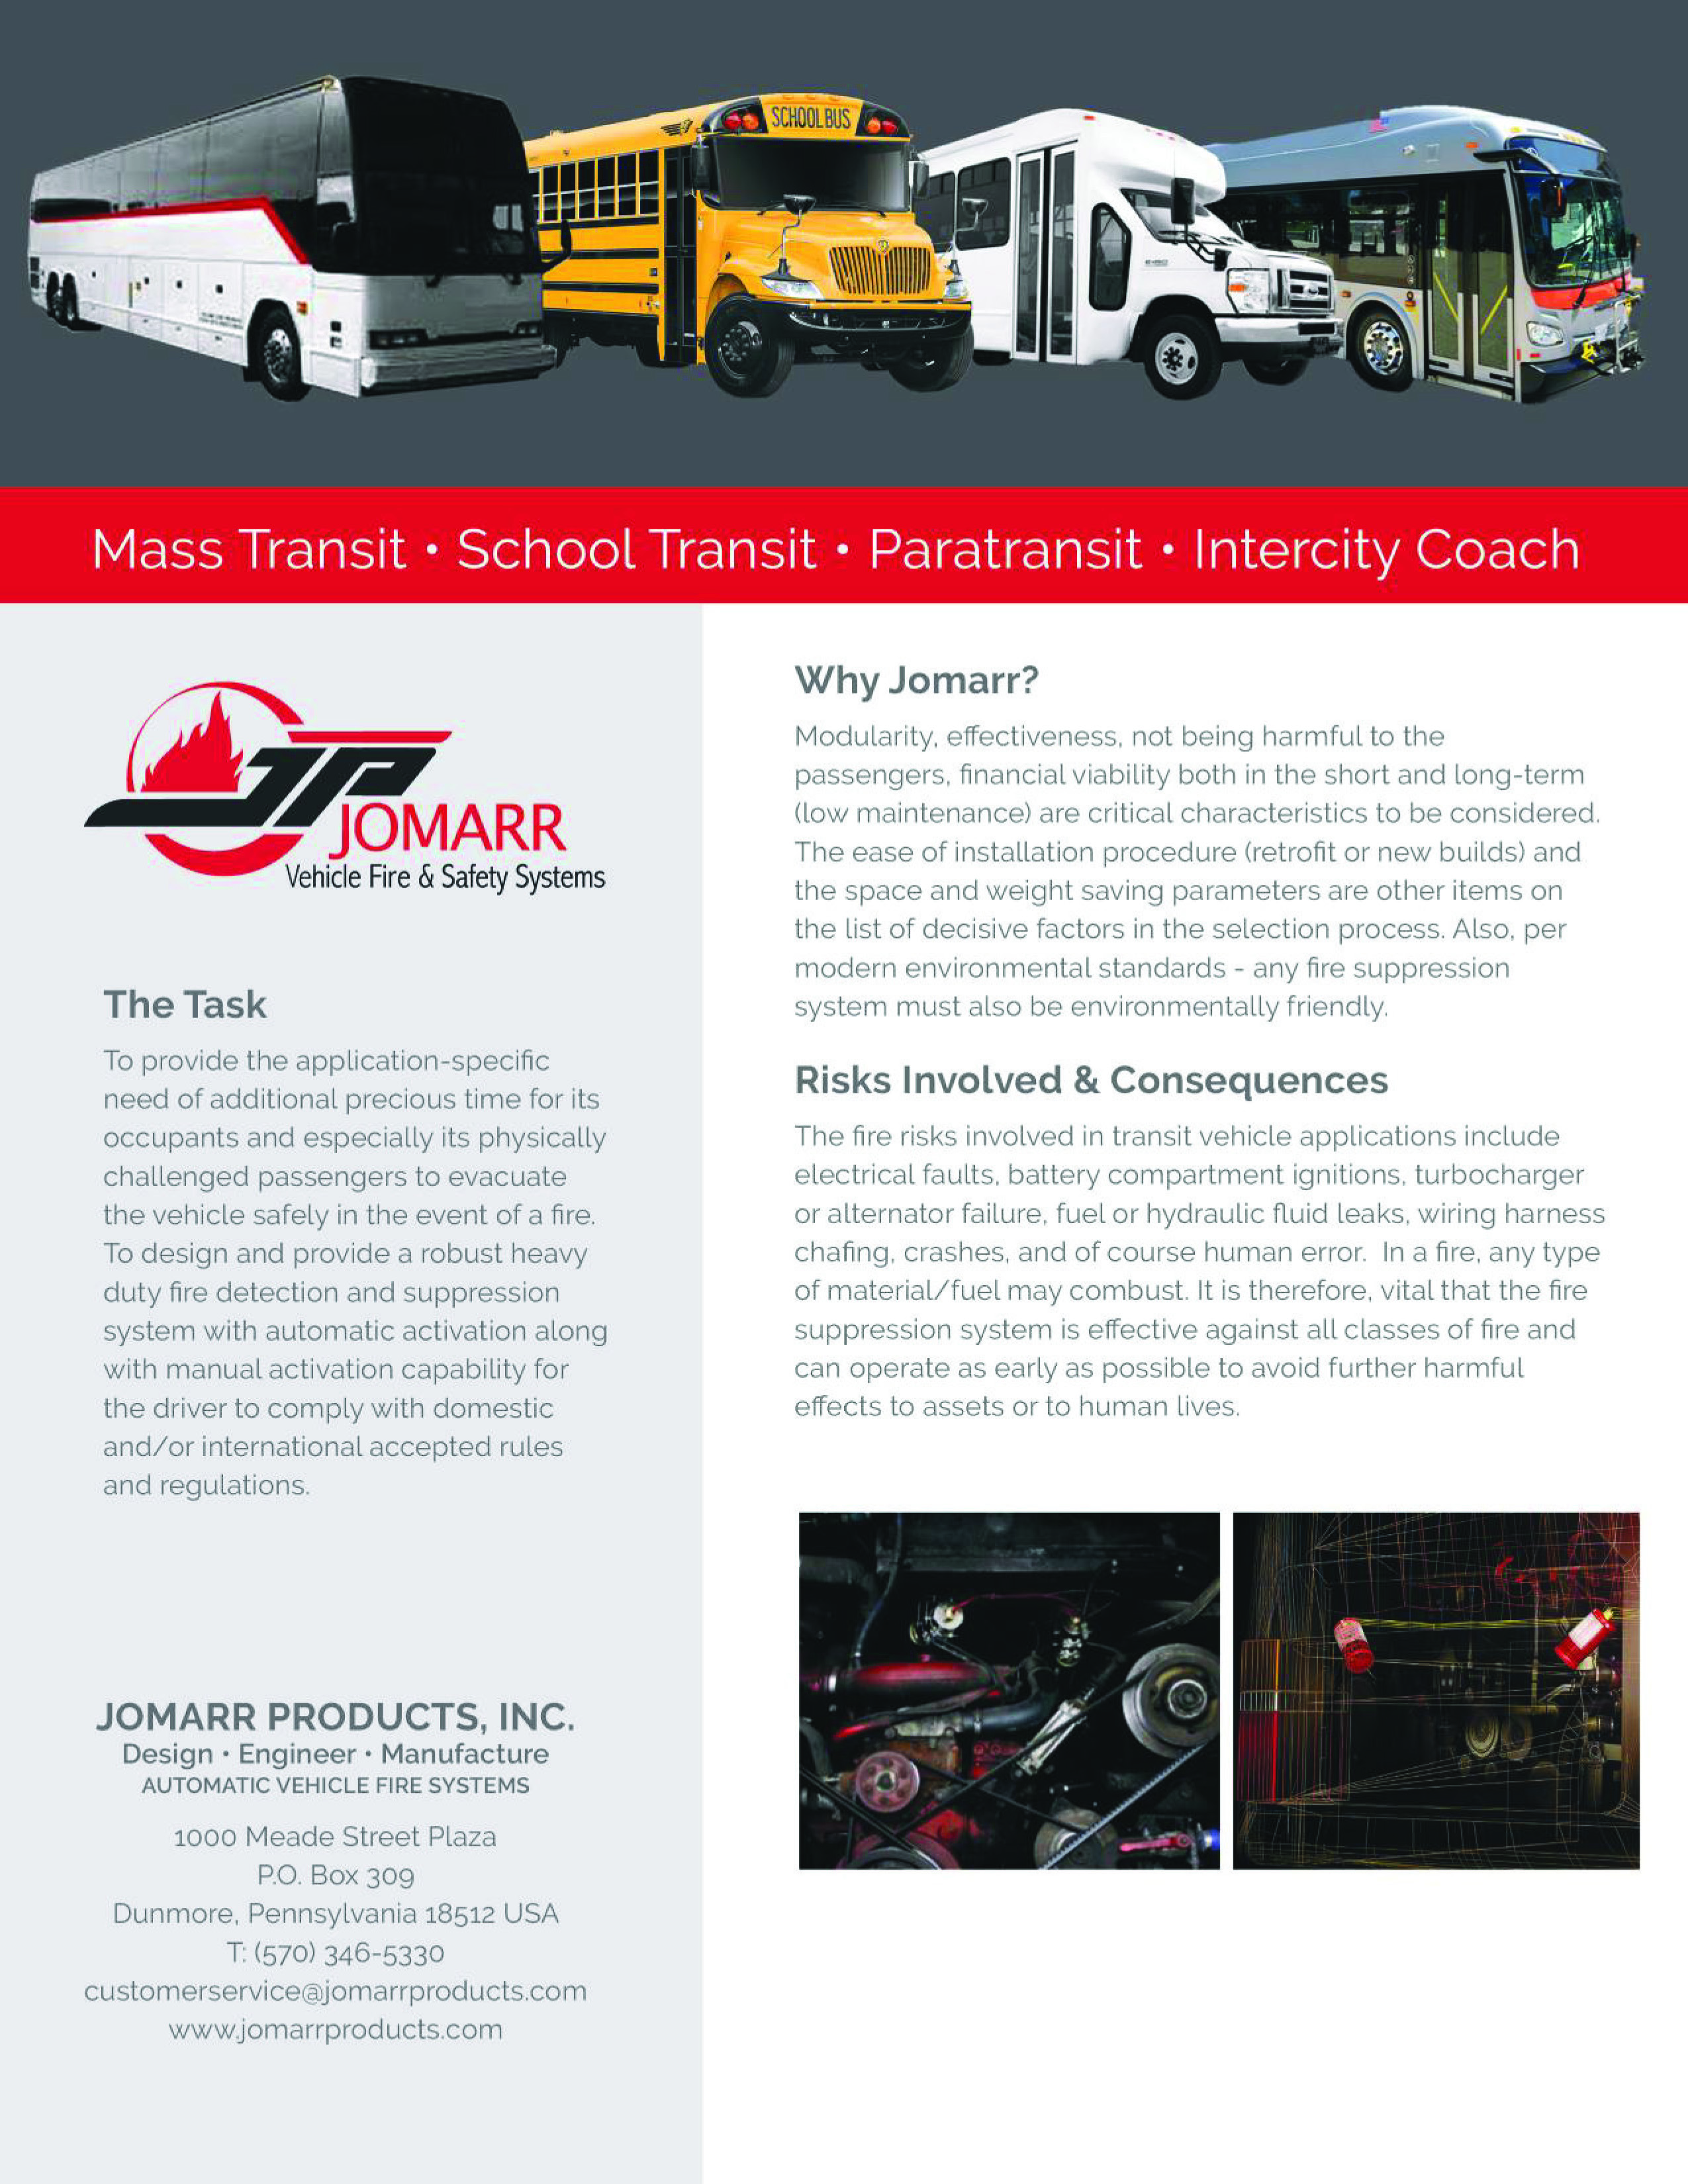 JOMARR AGX BUS WHY mass transit fire suppression